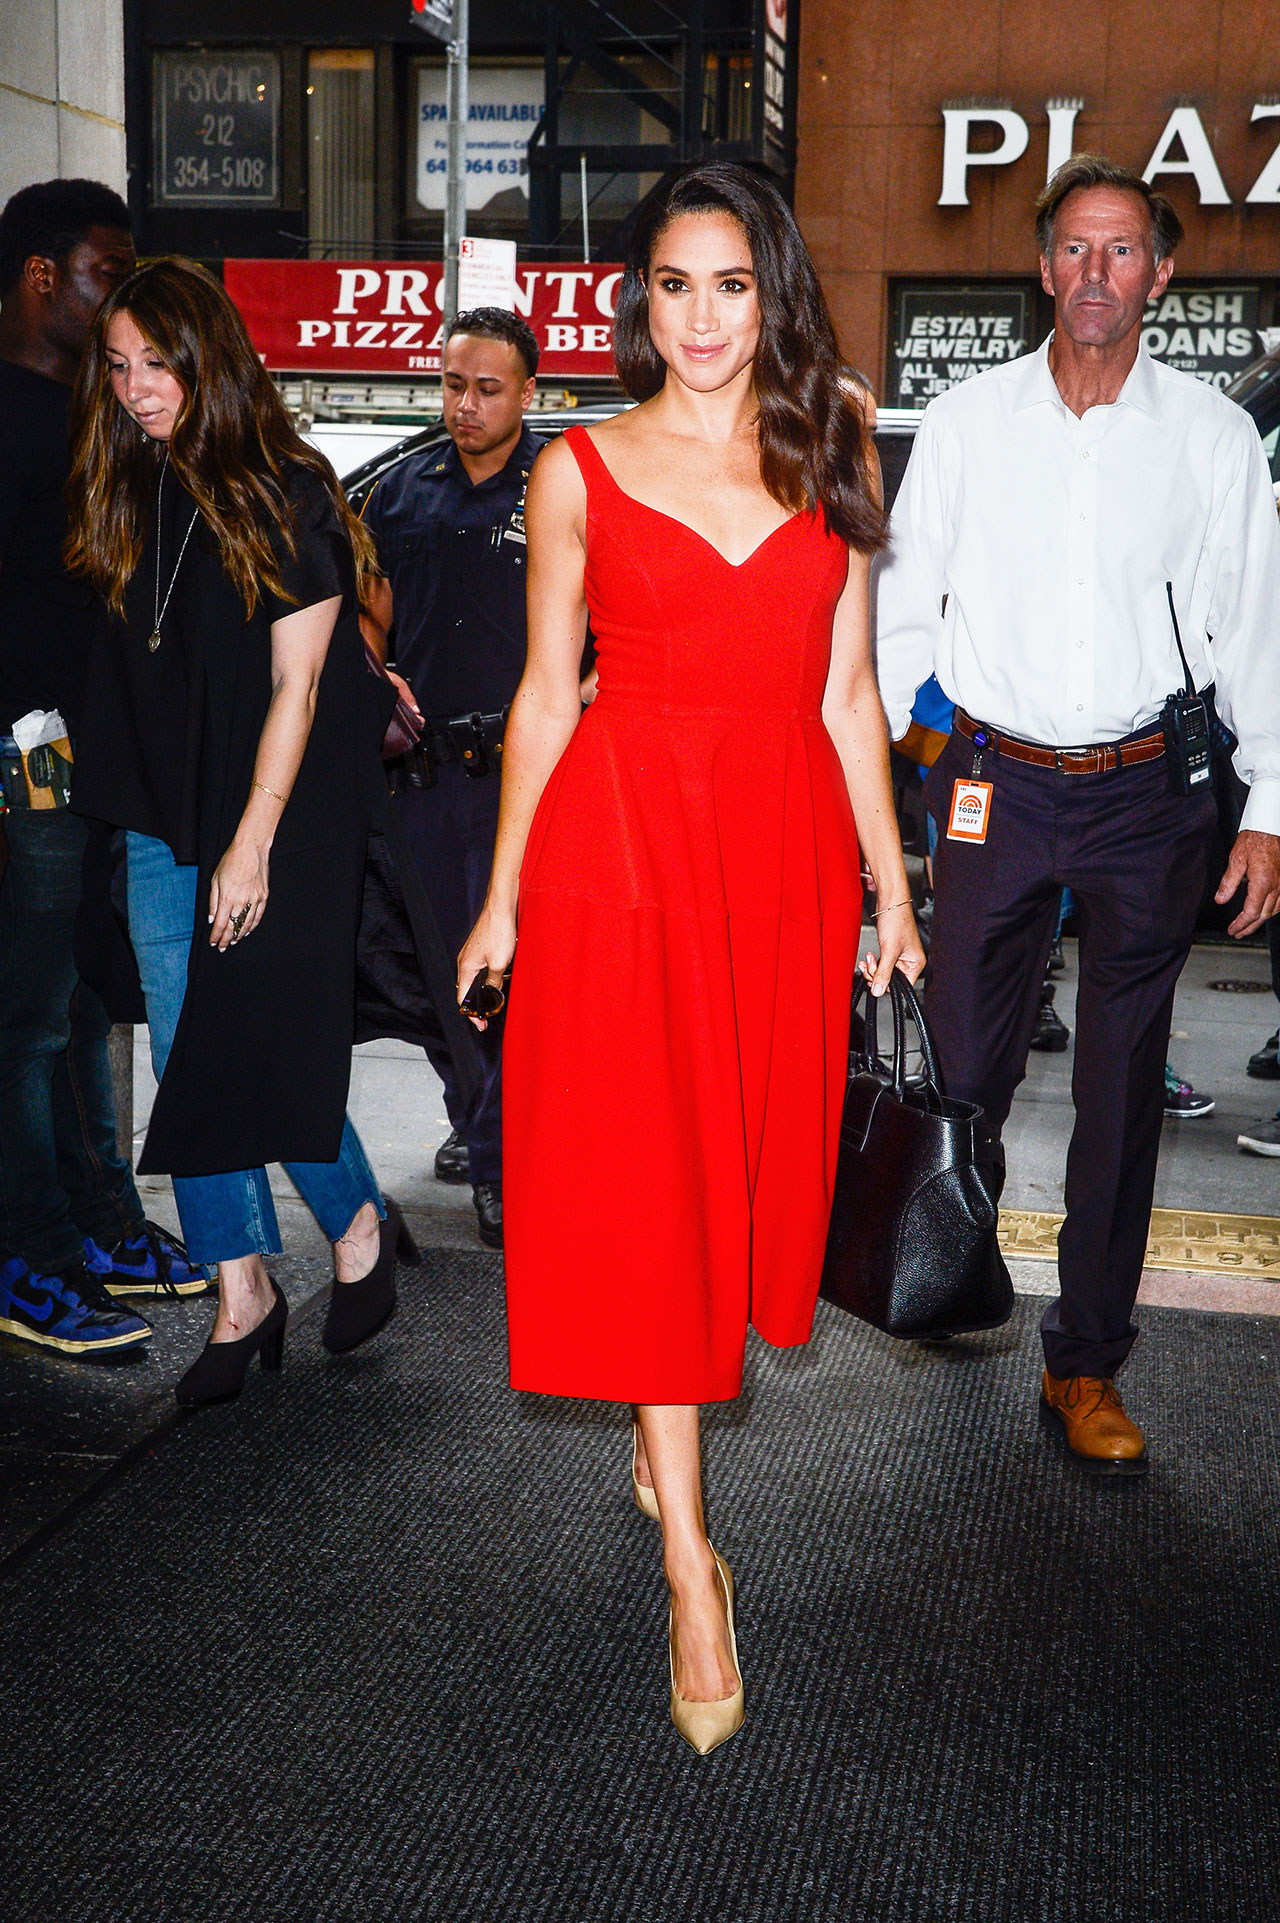 meghan-markle-style-red-dress